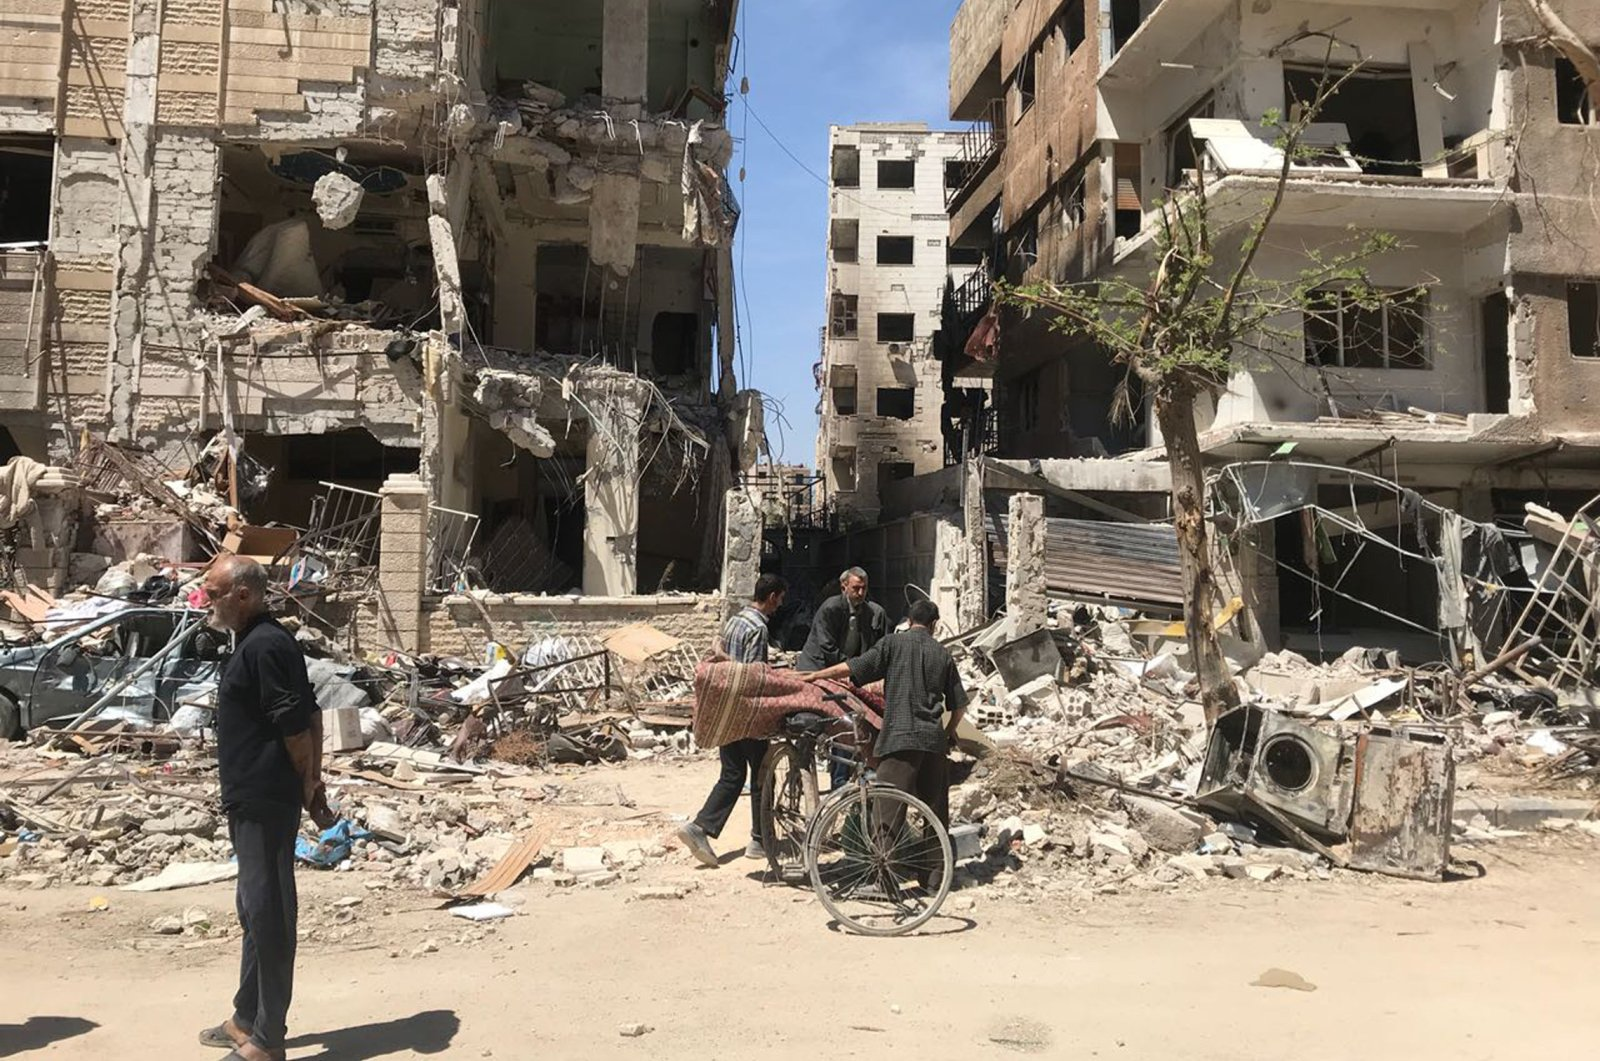 People stand in front of damaged buildings, in the town of Douma, the site of a suspected chemical weapons attack, near Damascus, Syria, Monday, April 16, 2018. (AP Photo)